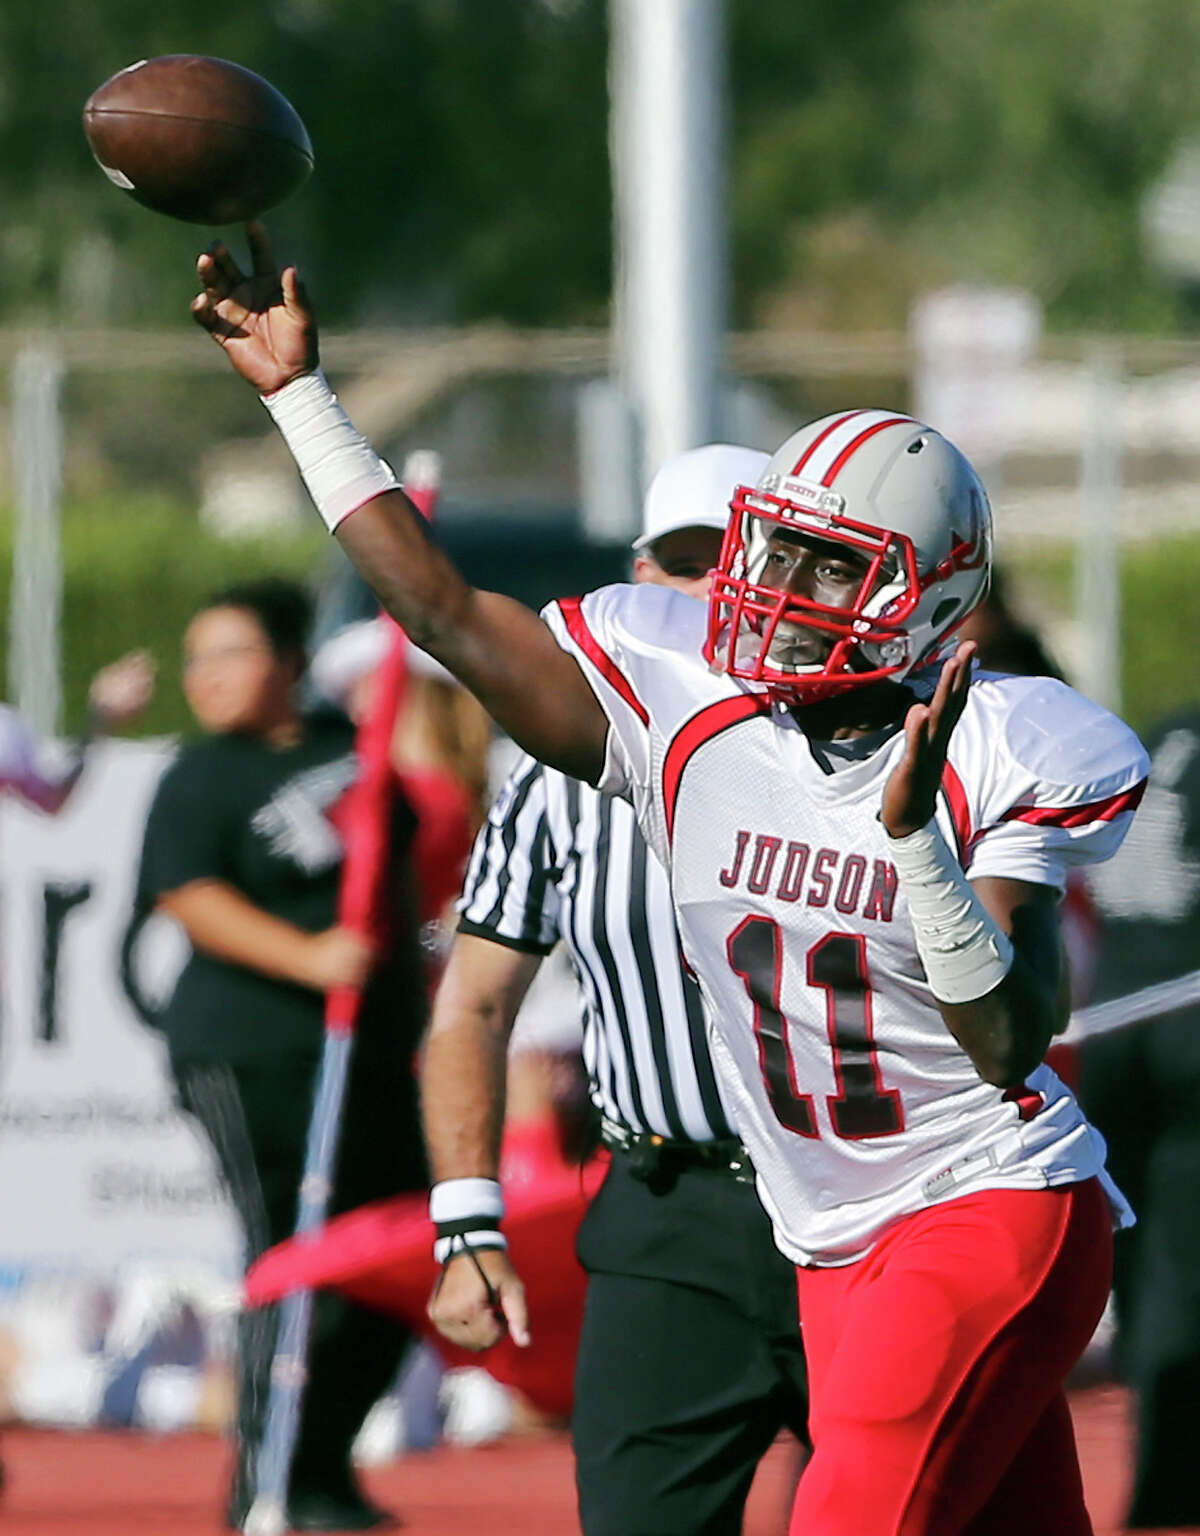 Judson's Julon Williams passes against Laredo United during first half action of their Class 6A Division I third-round playoff game Friday Nov. 28, 2014 at Texas A&M Kingsville's Javelina Stadium in Kingsville, Tx.